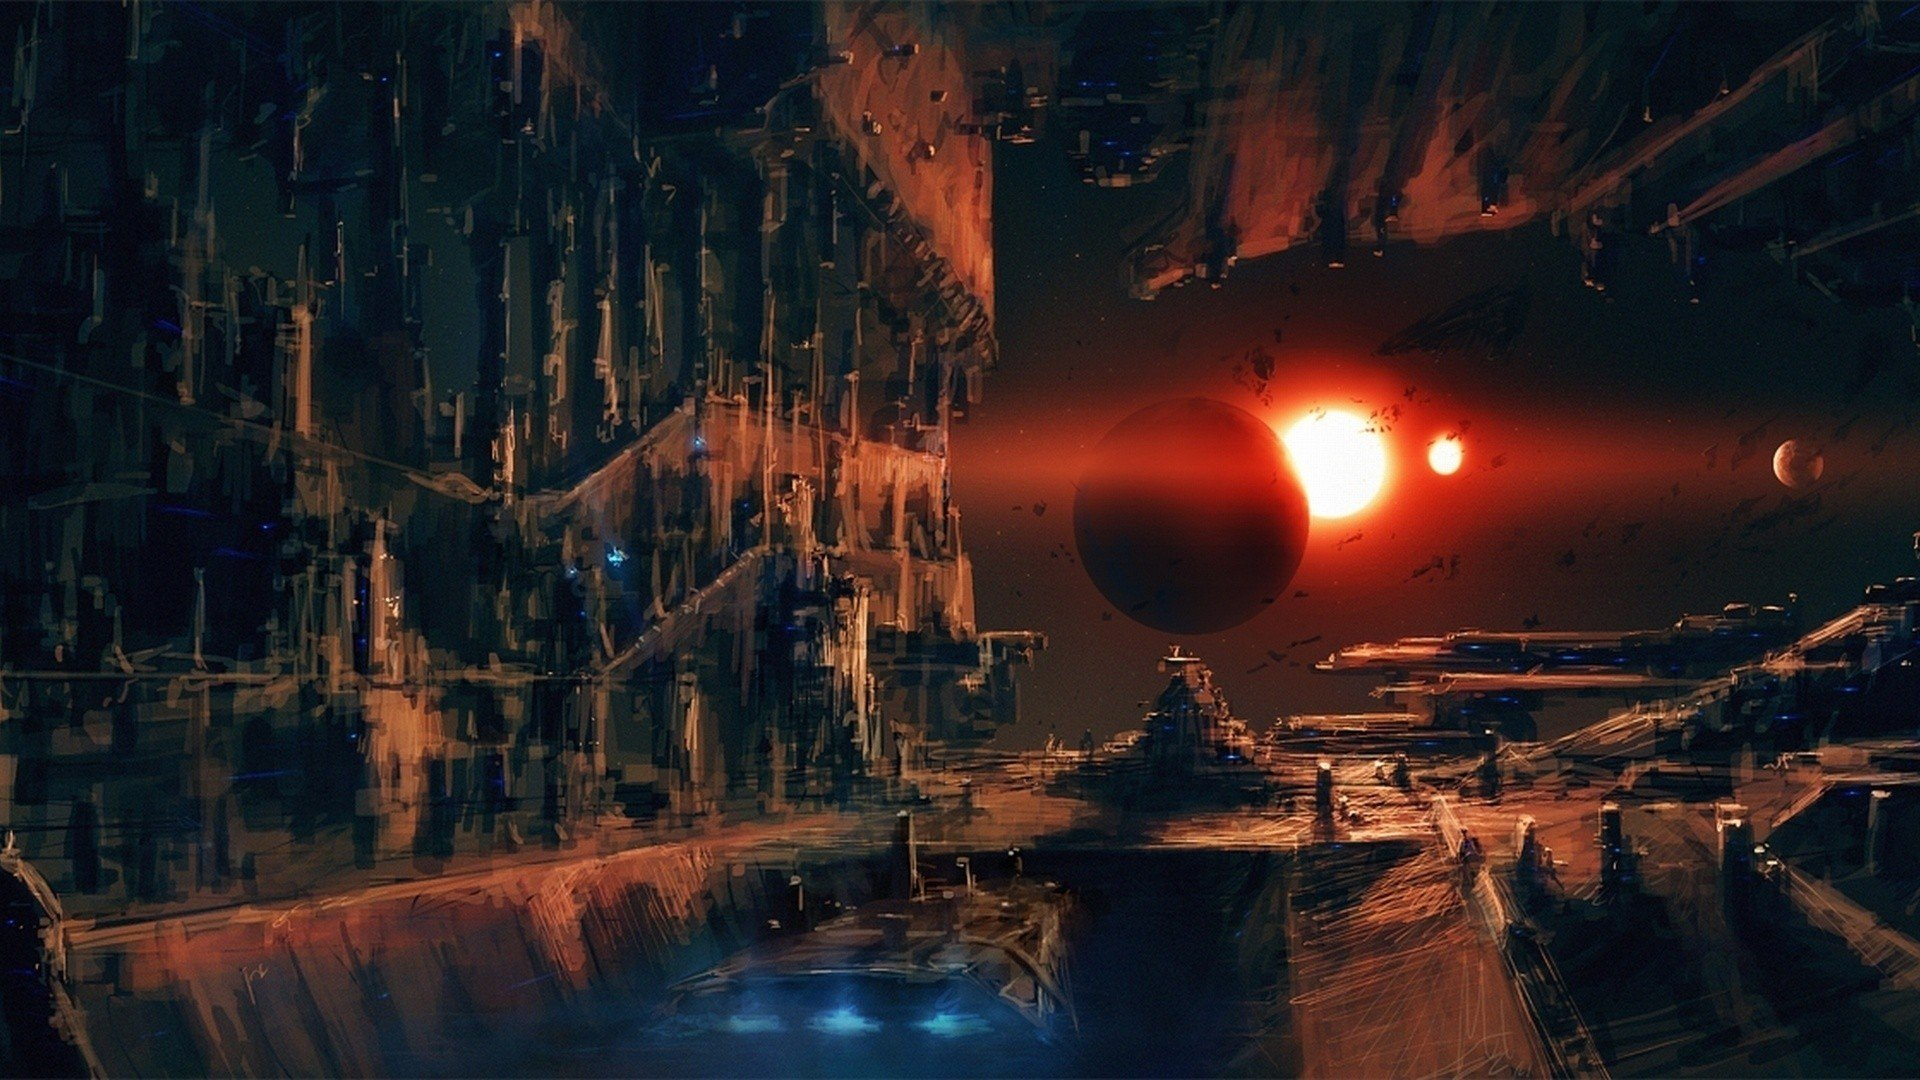 Space space station planet science fiction hd for Immagini full hd 1920x1080